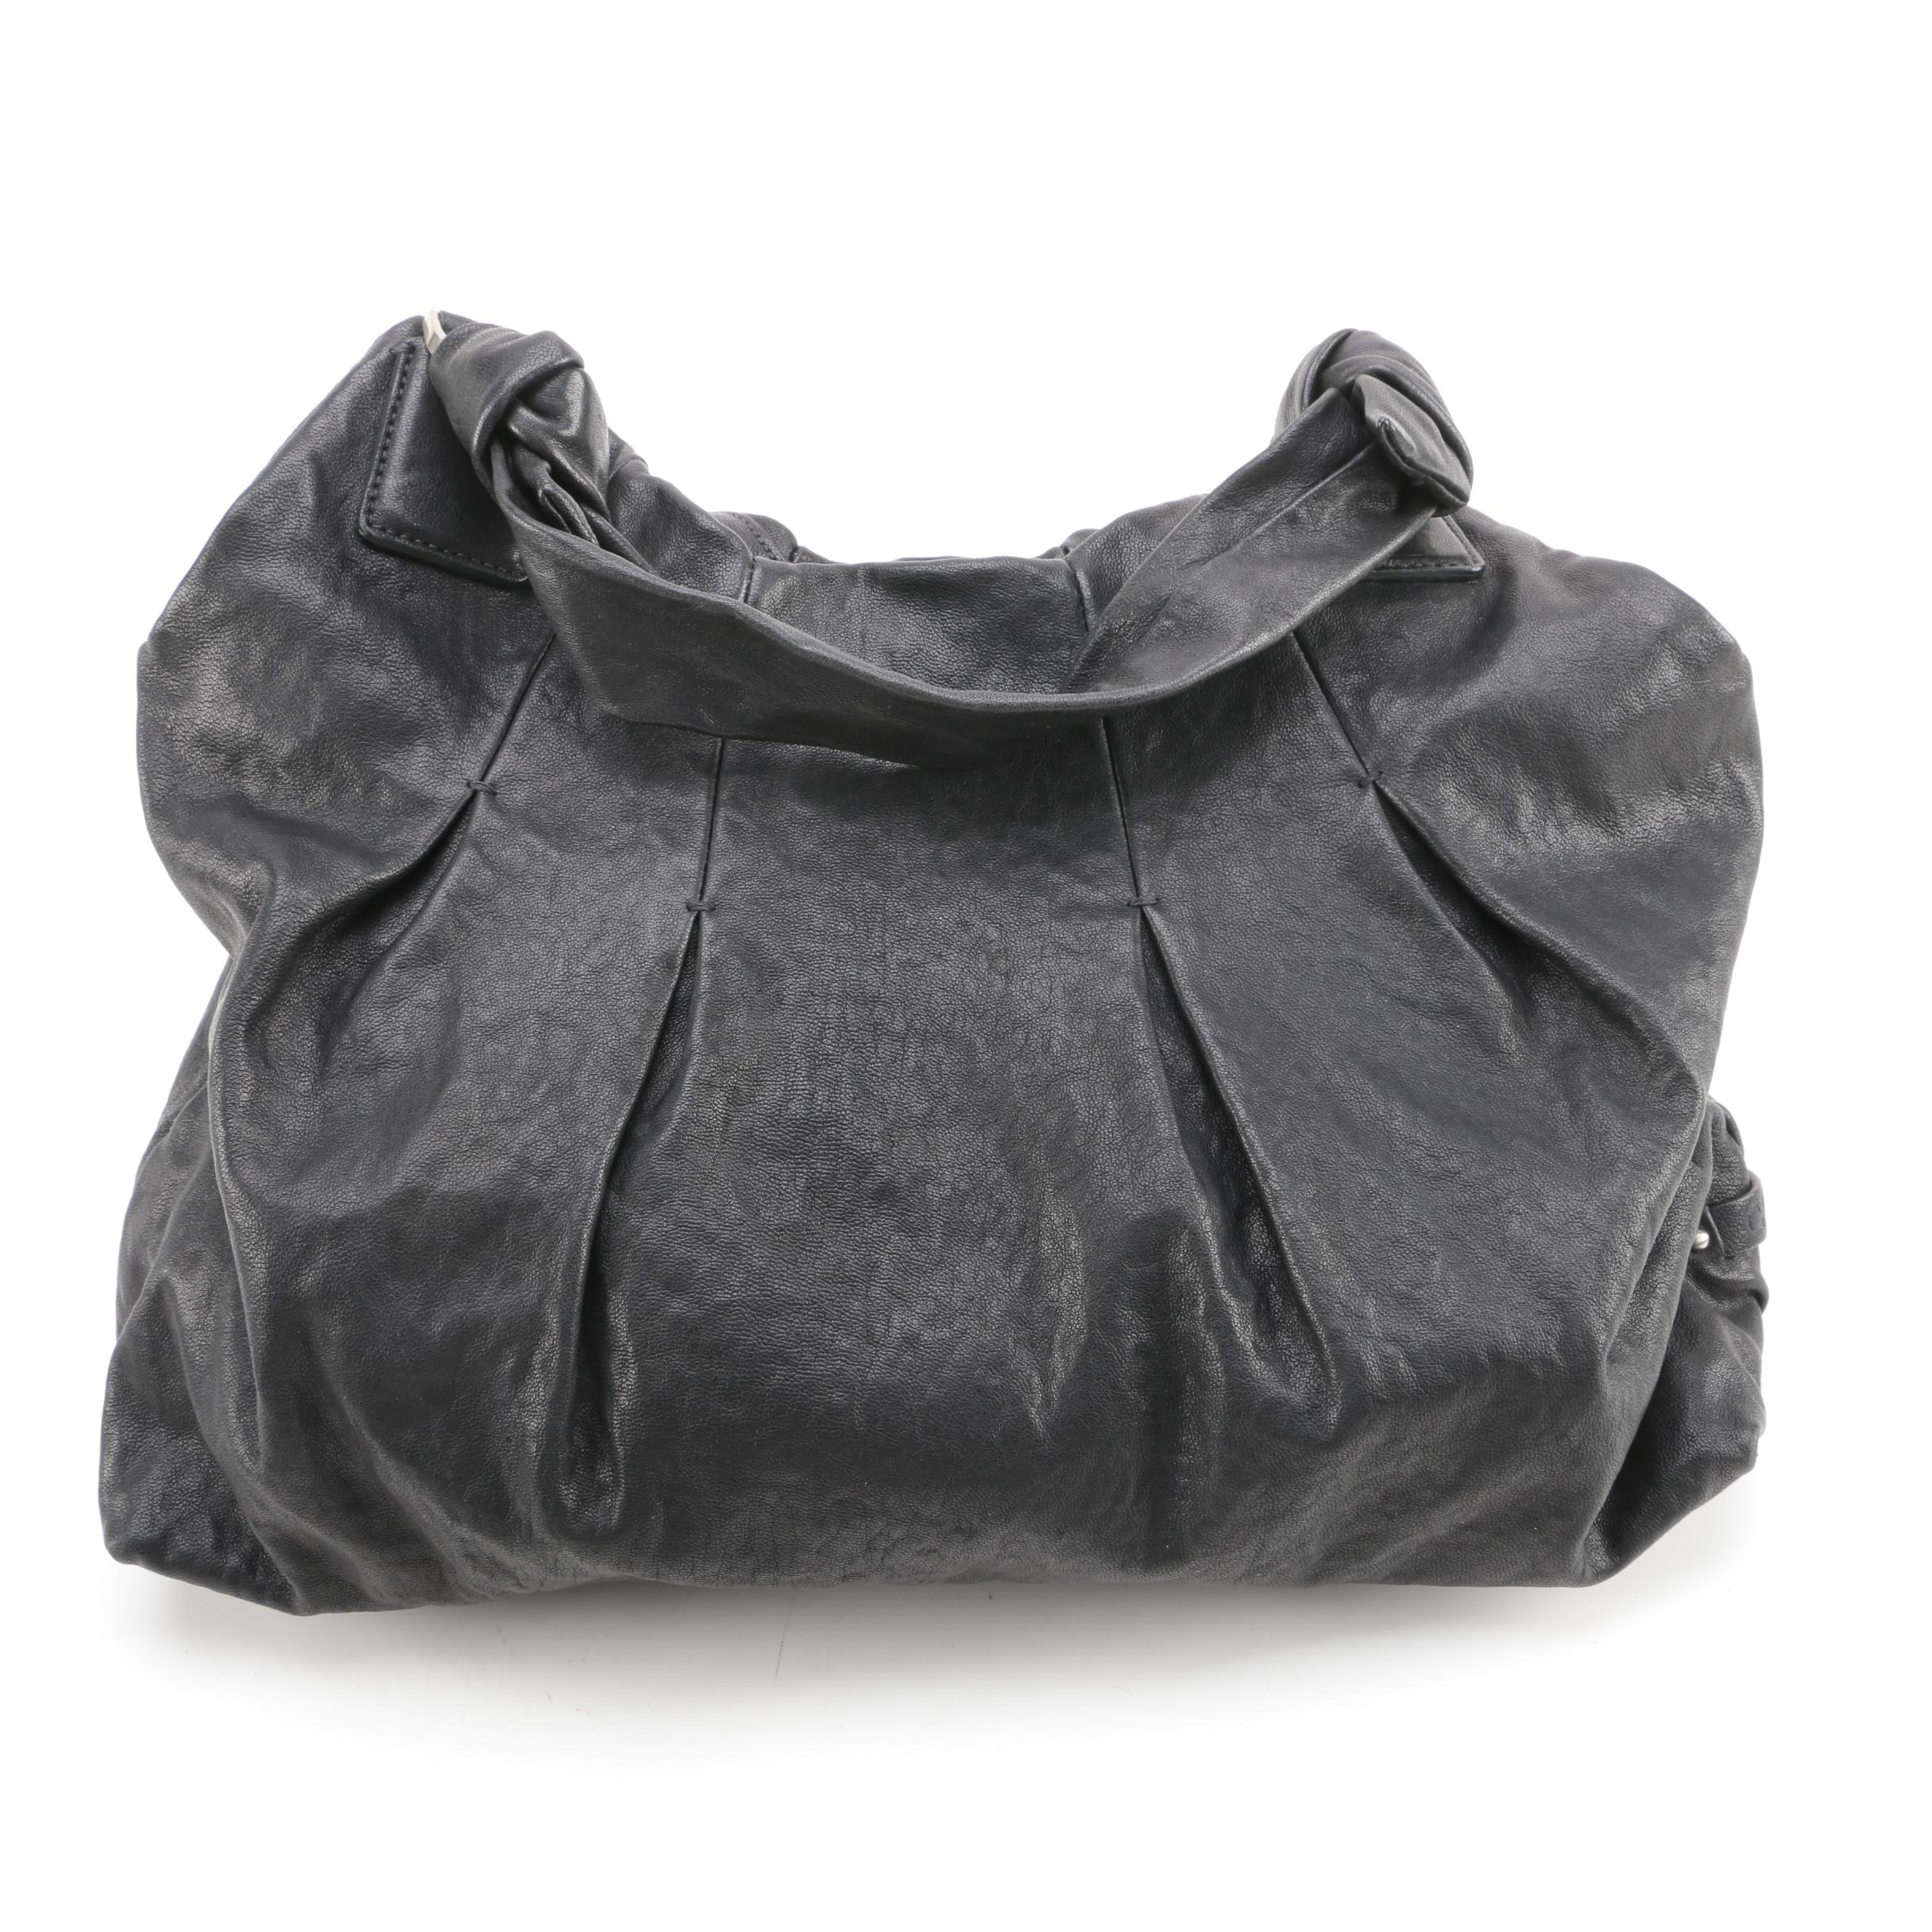 Cole Haan Black Leather Hobo Bag